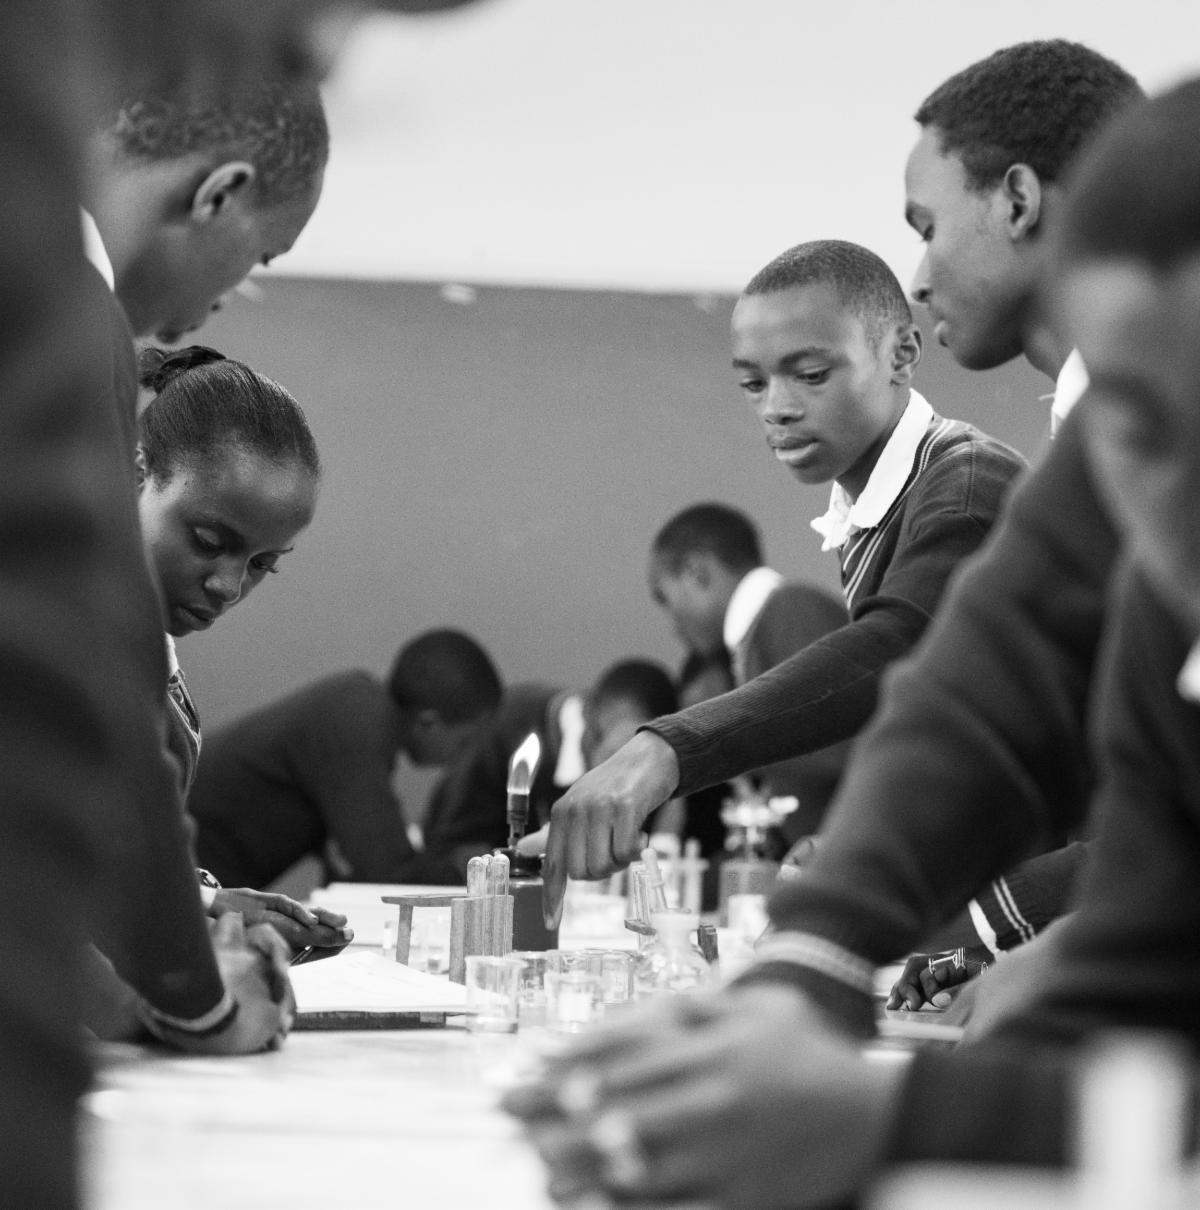 Secondary Education Should Prepare Young People for Work - New Report